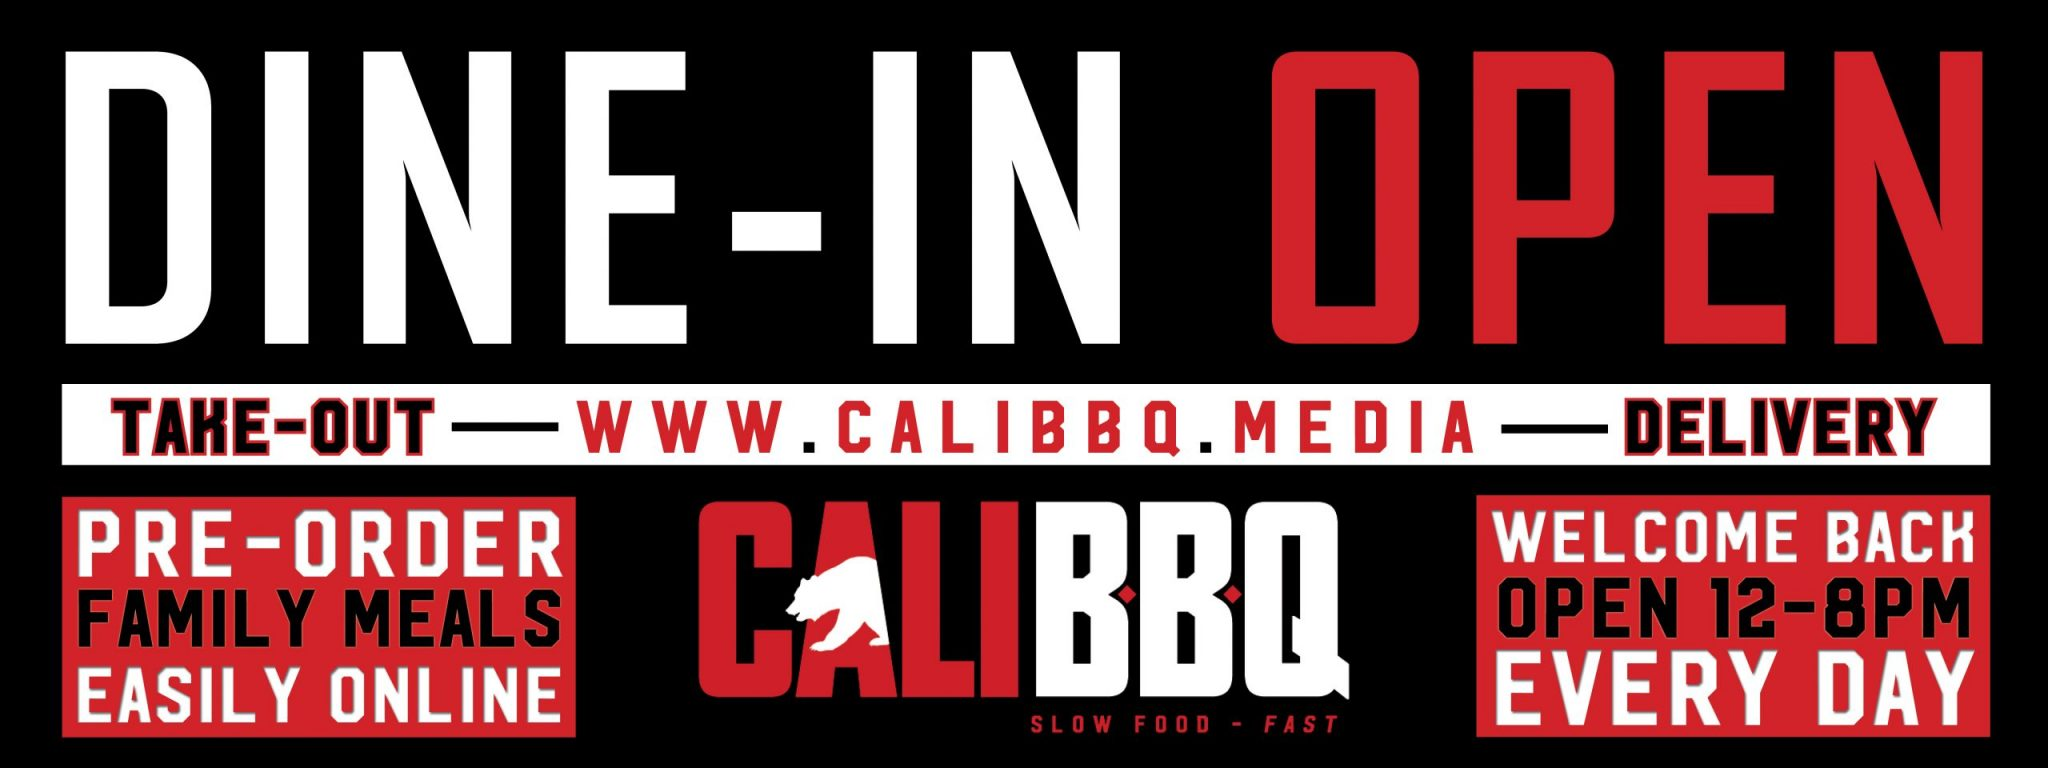 Cali bbq is back open for limited dine-in service in spring valley! Welcome home!